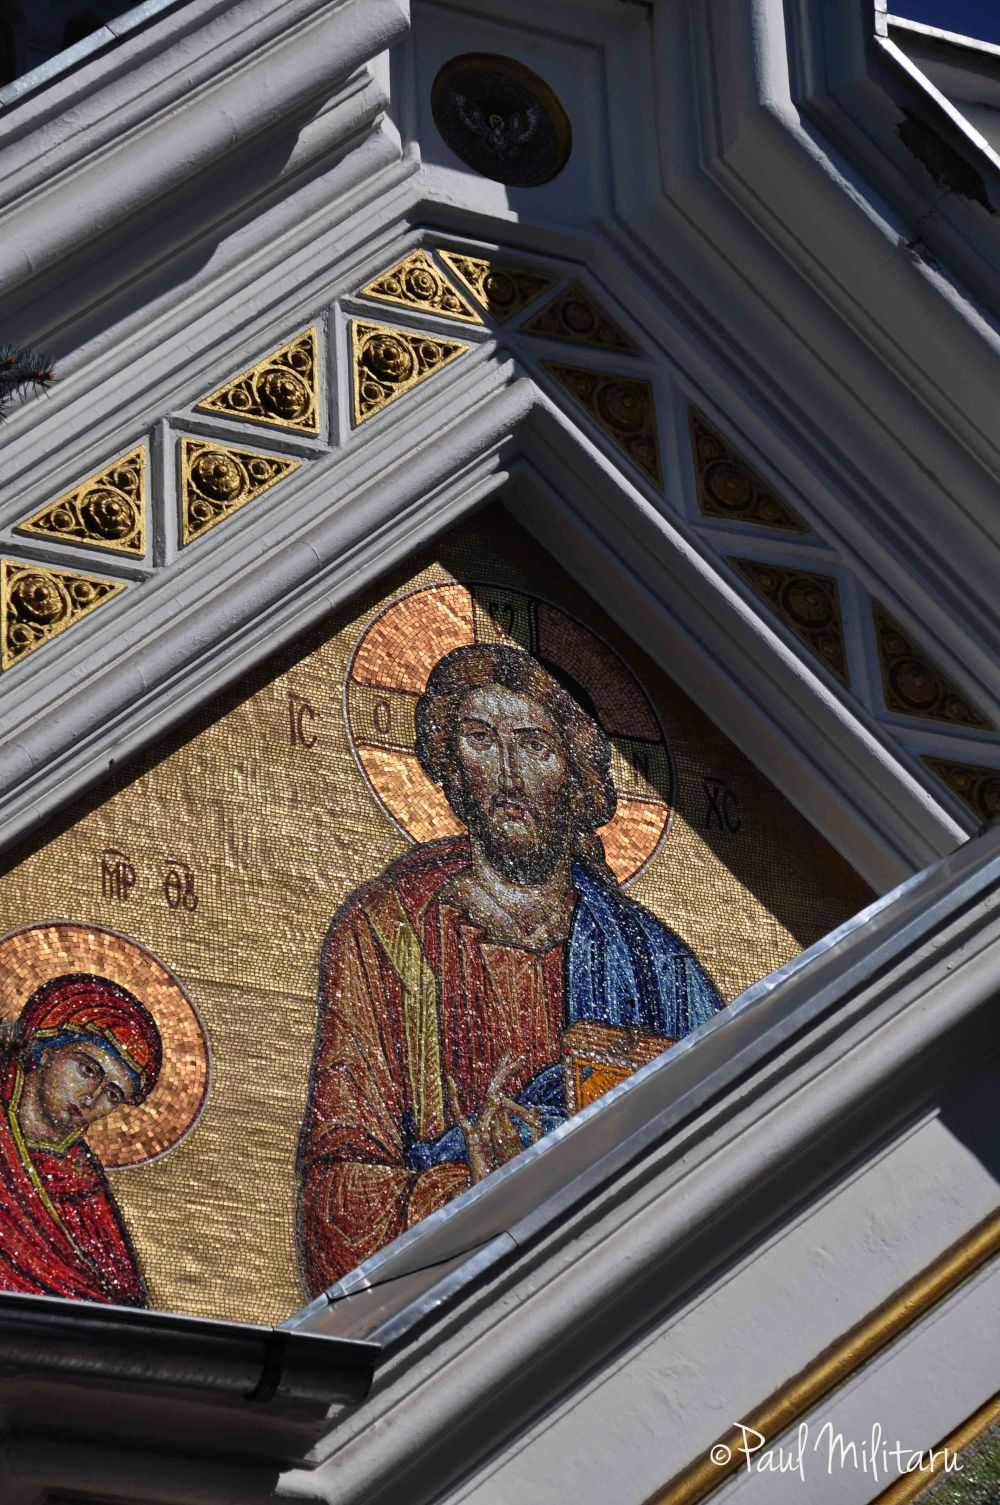 architectural geometric shapes and church mosaics